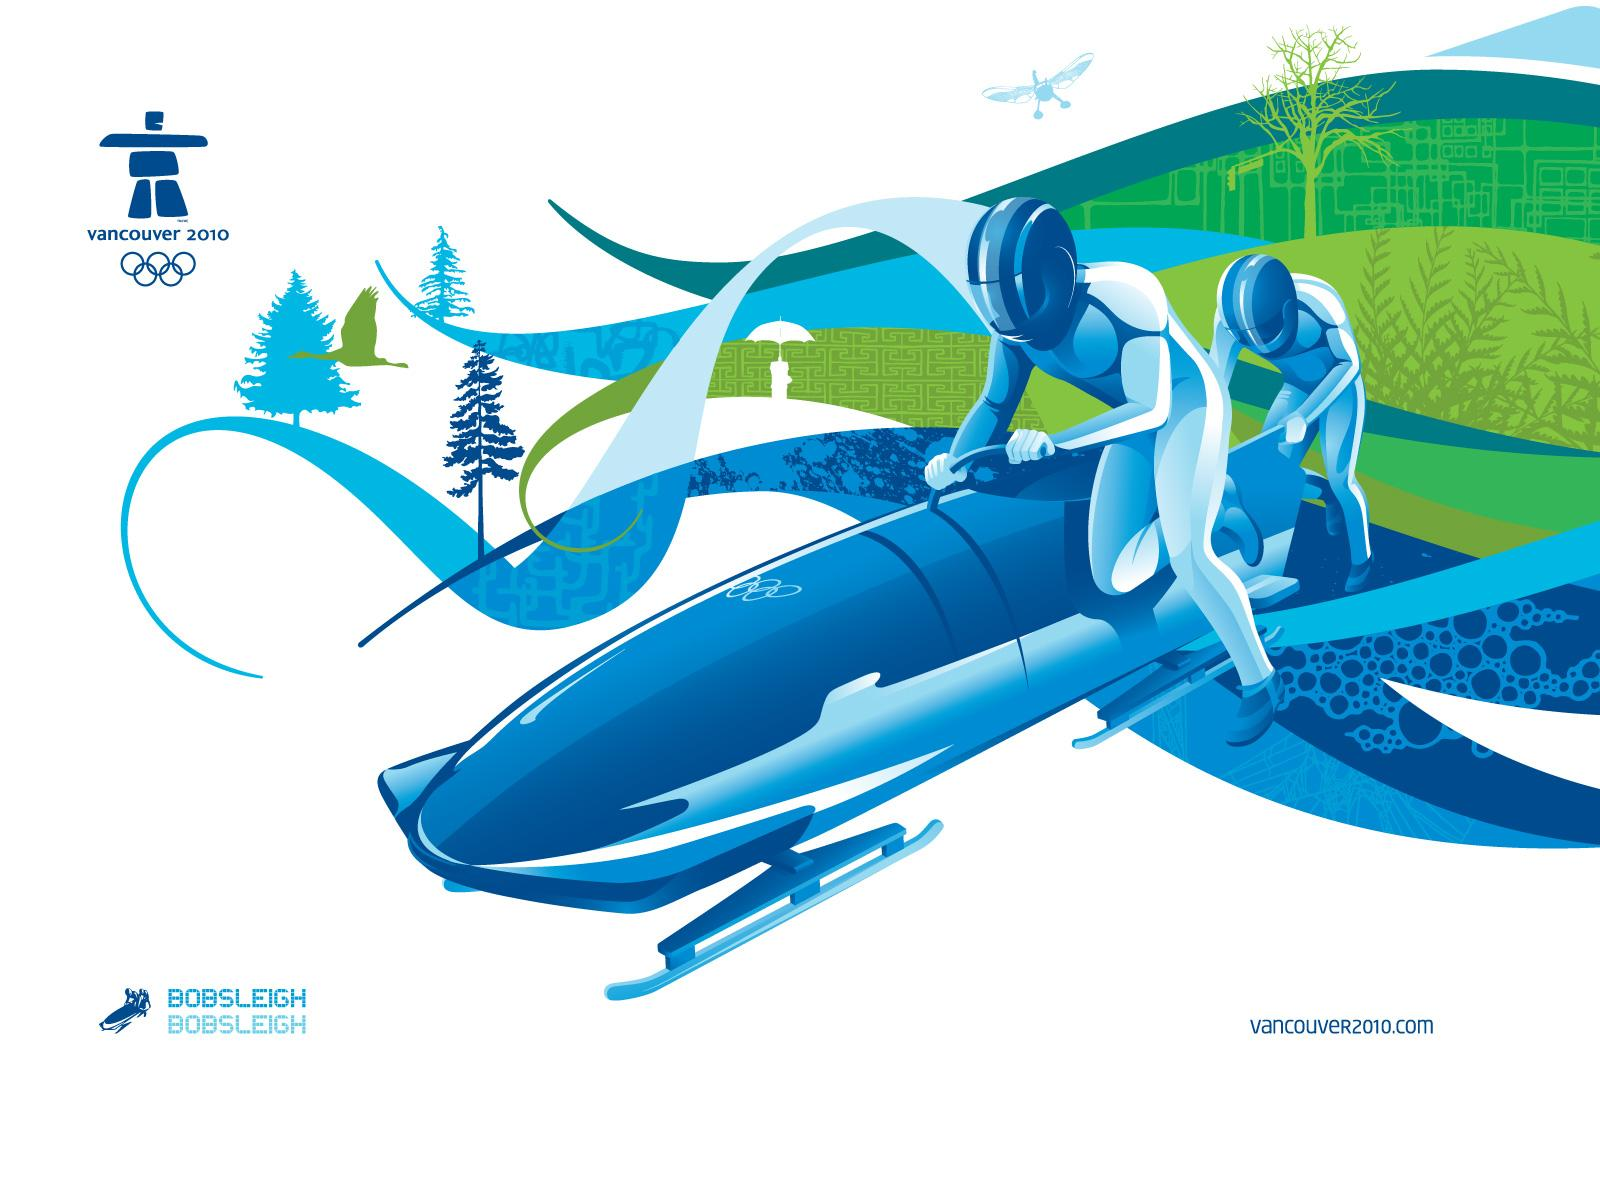 Vancouver 2010 Print Ad -  Bobsleigh